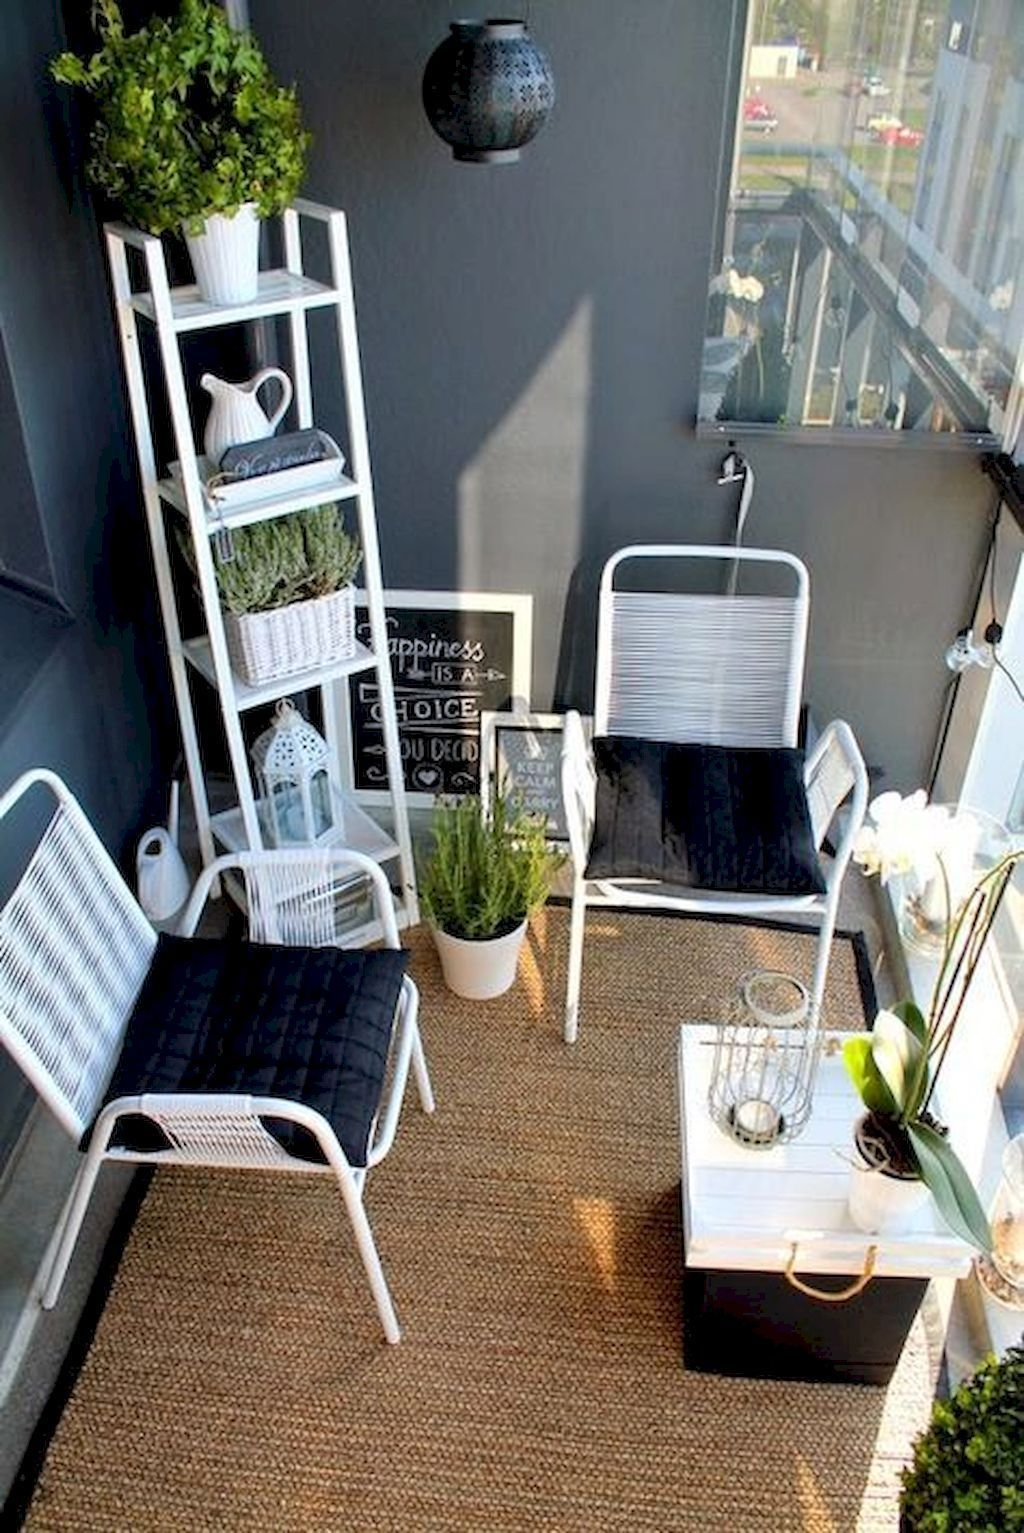 Superb Apartment Balcony Decorating Ideas To Try07